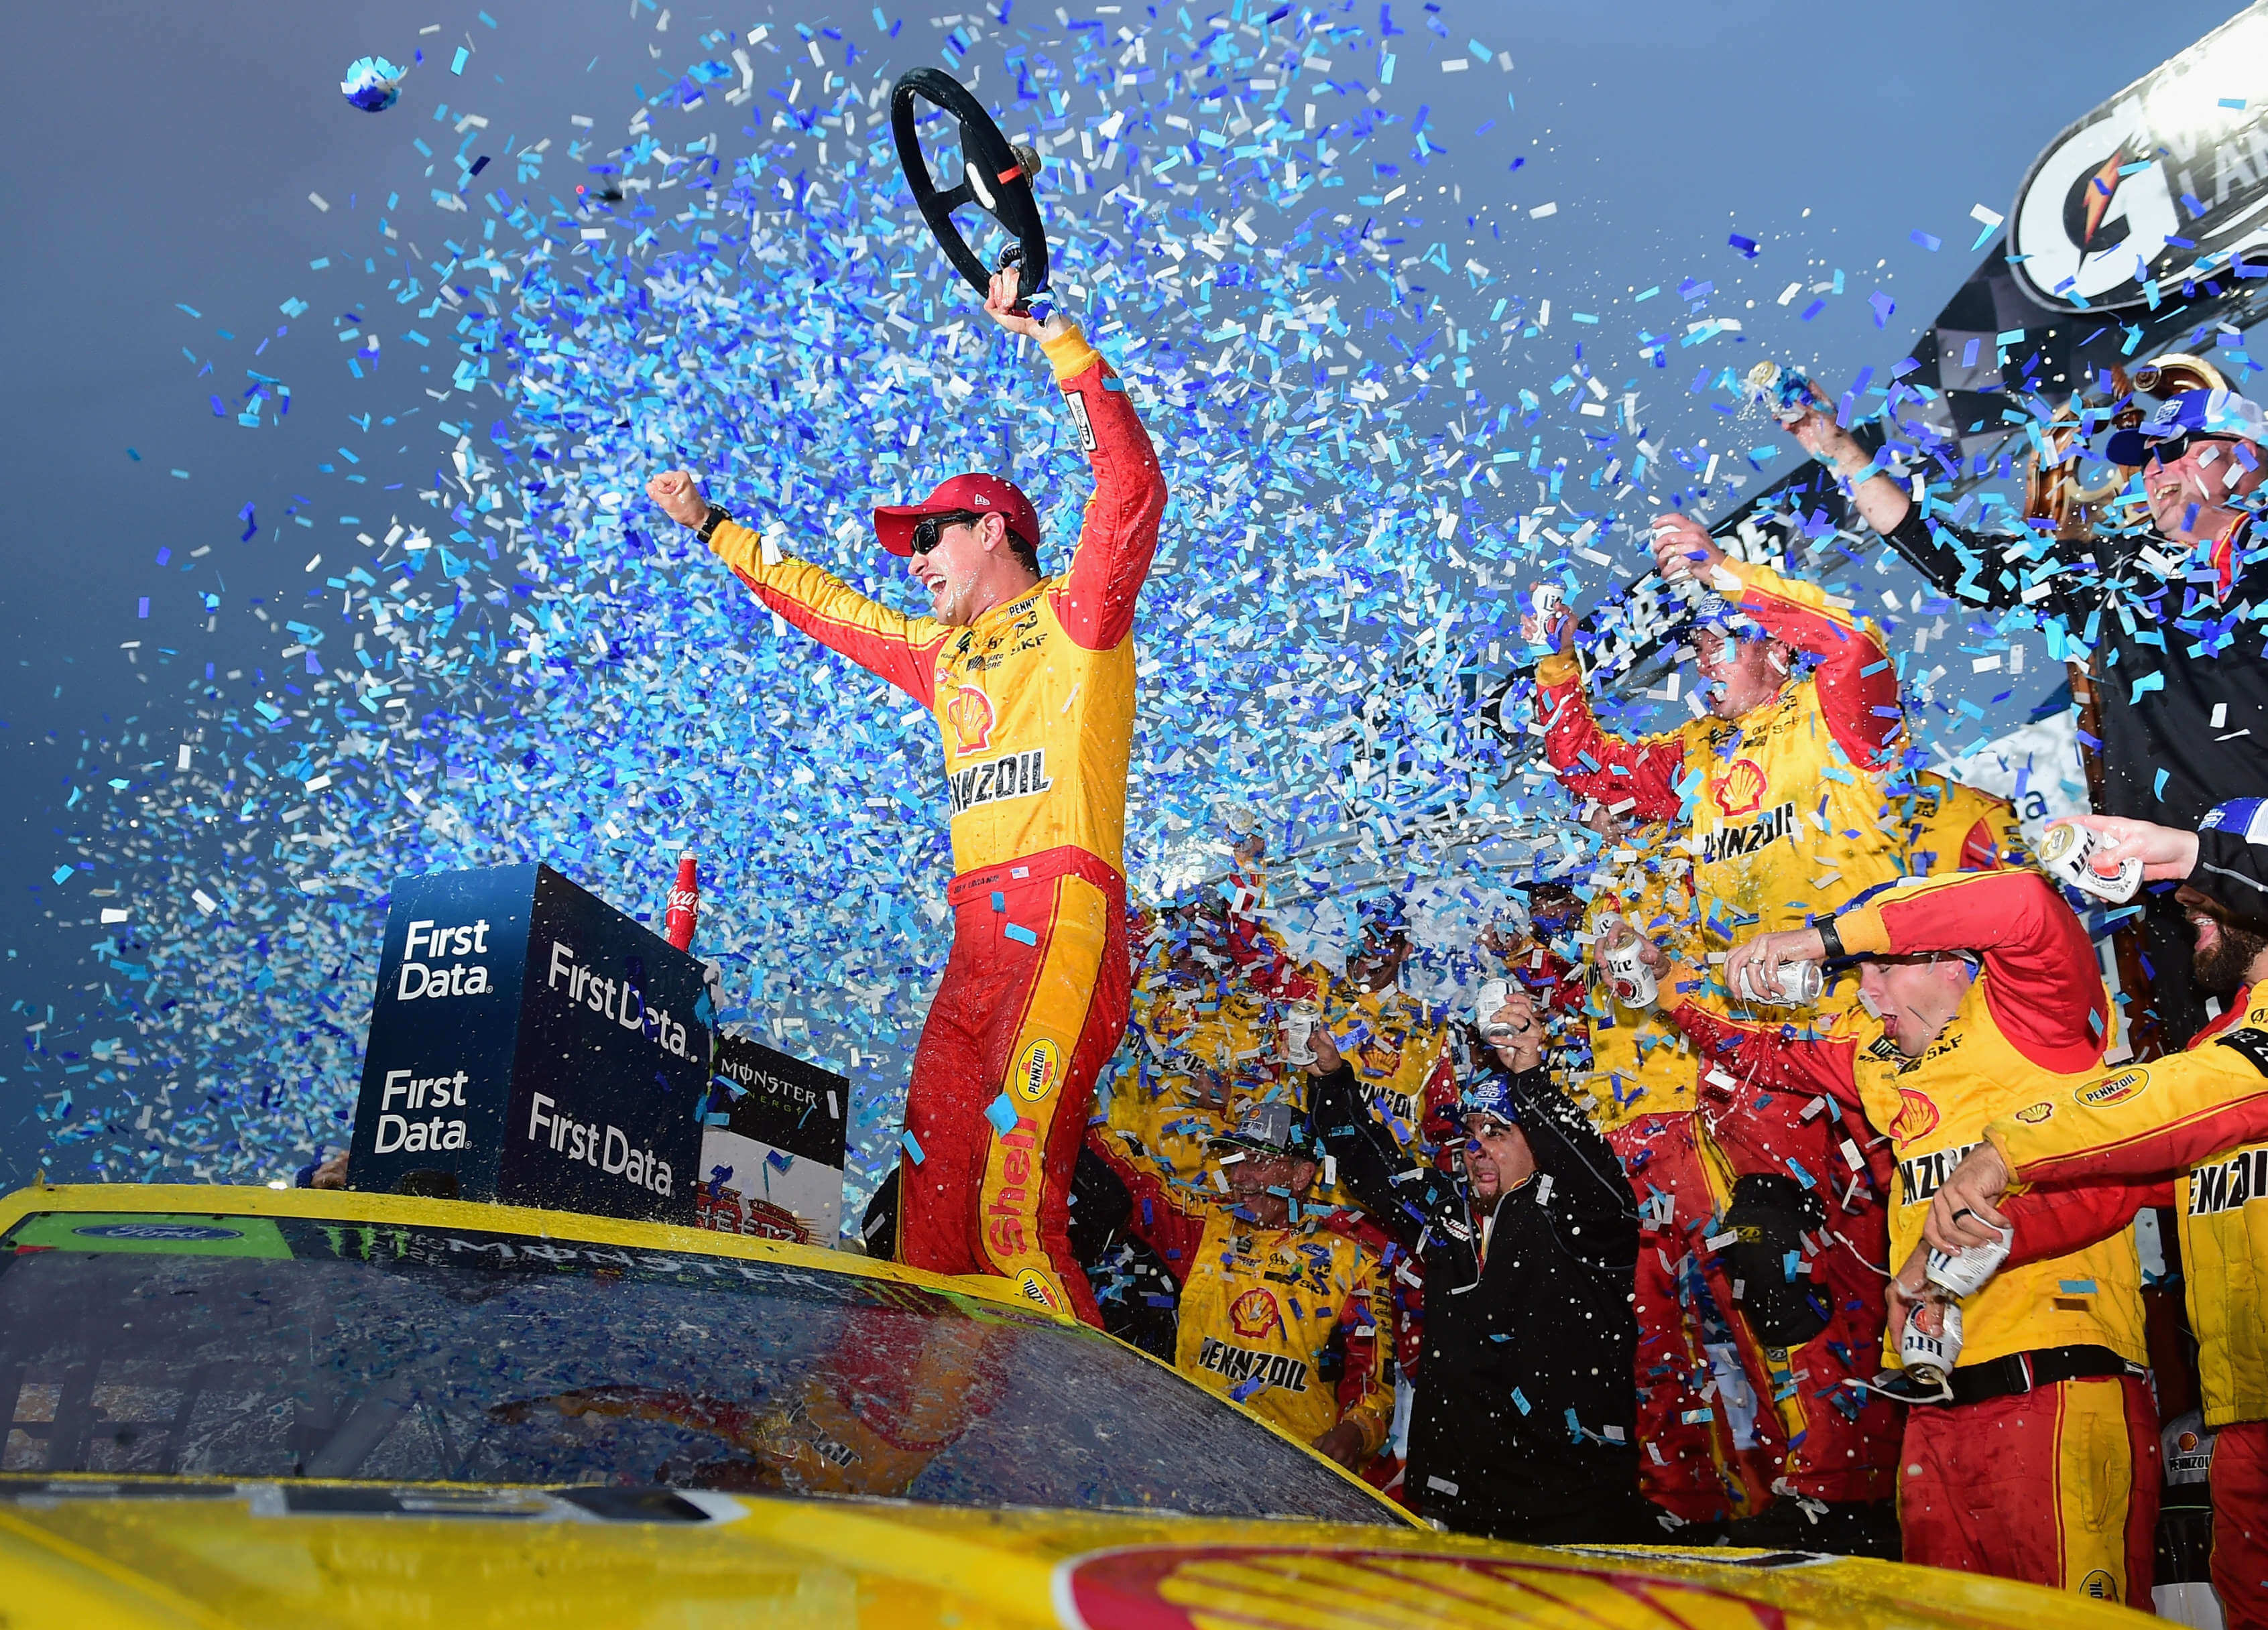 Joey Logano in Victory Lane at Martinsville Speedway